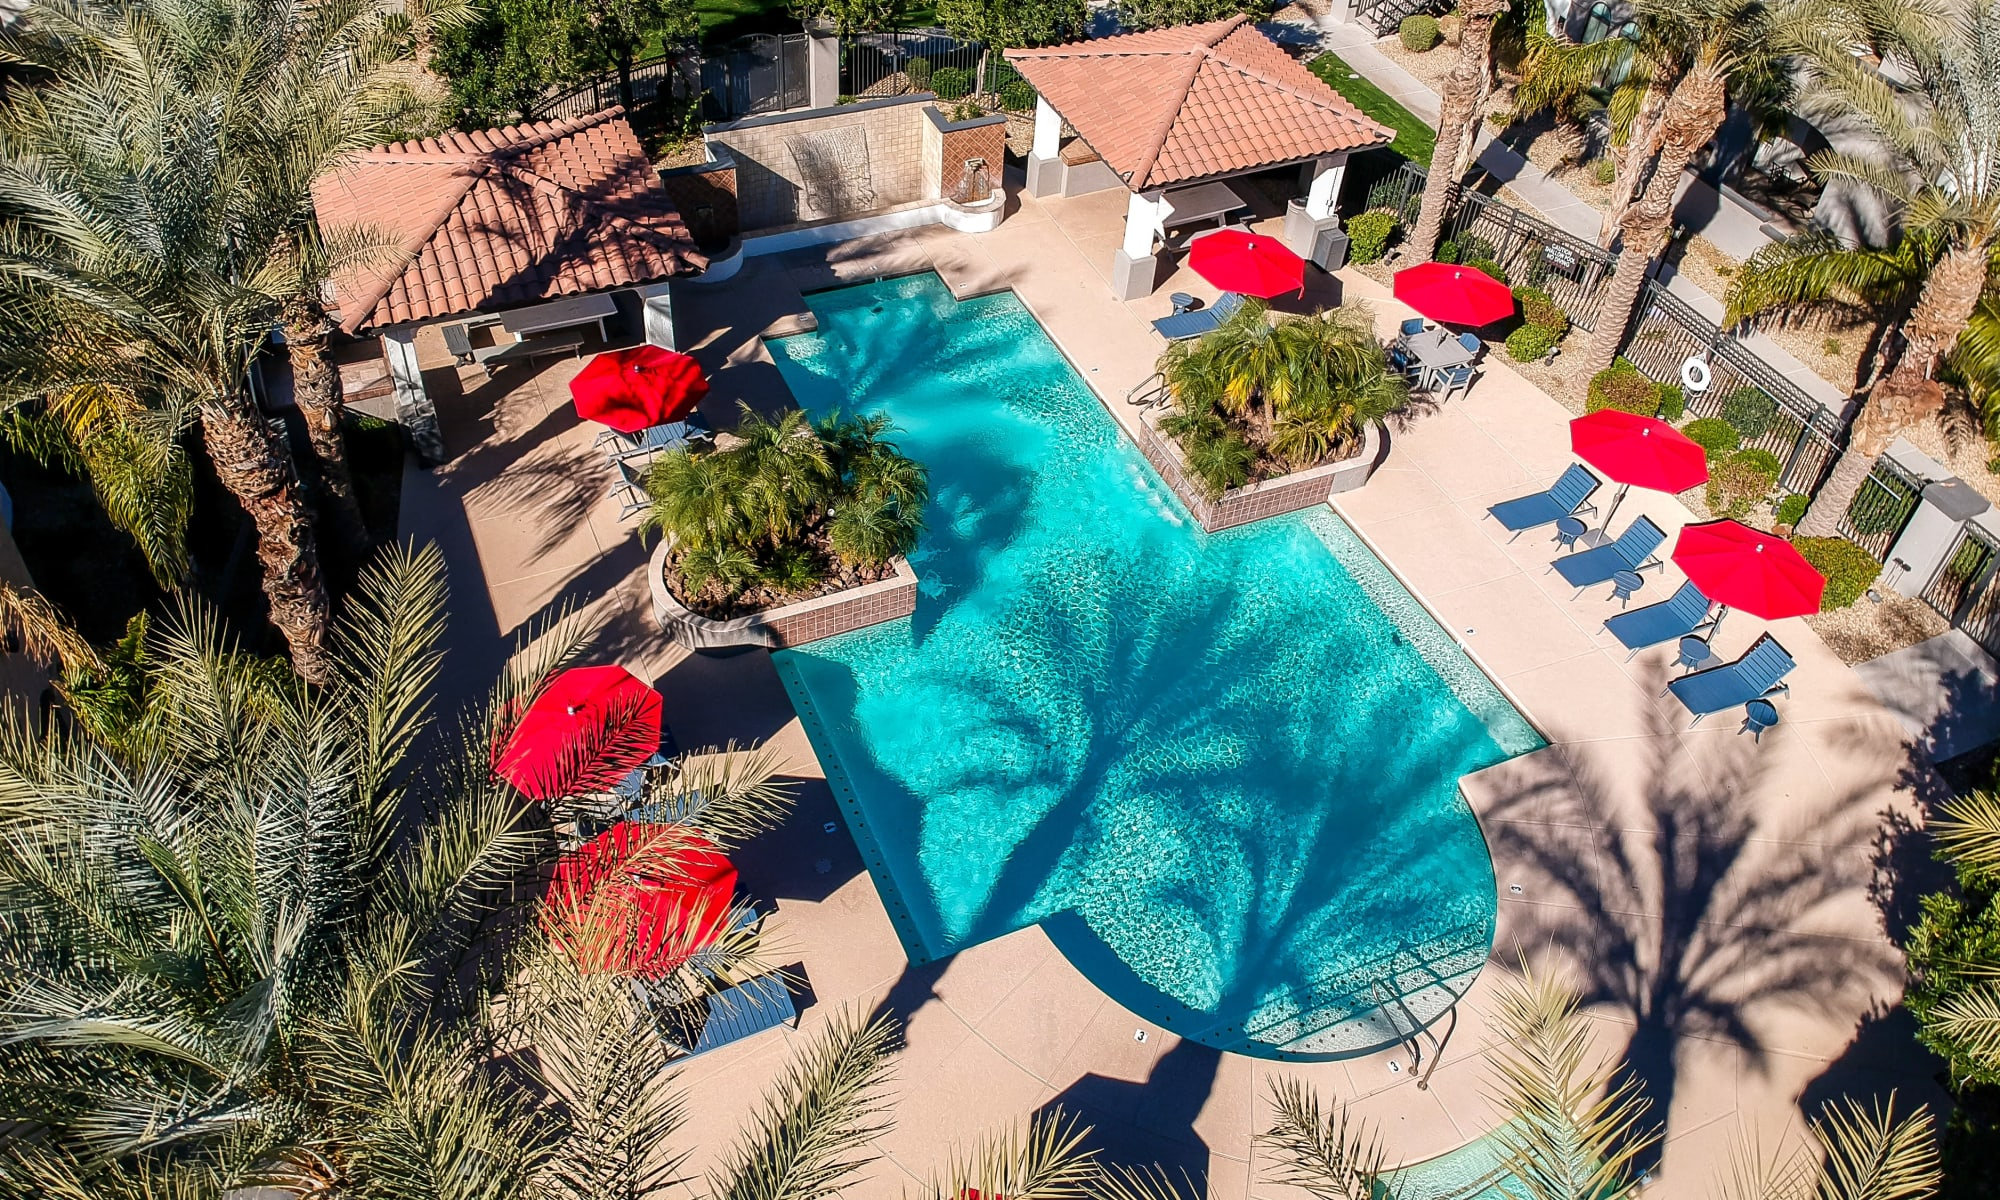 Apartments for rent at Dobson 2222 in Chandler, Arizona